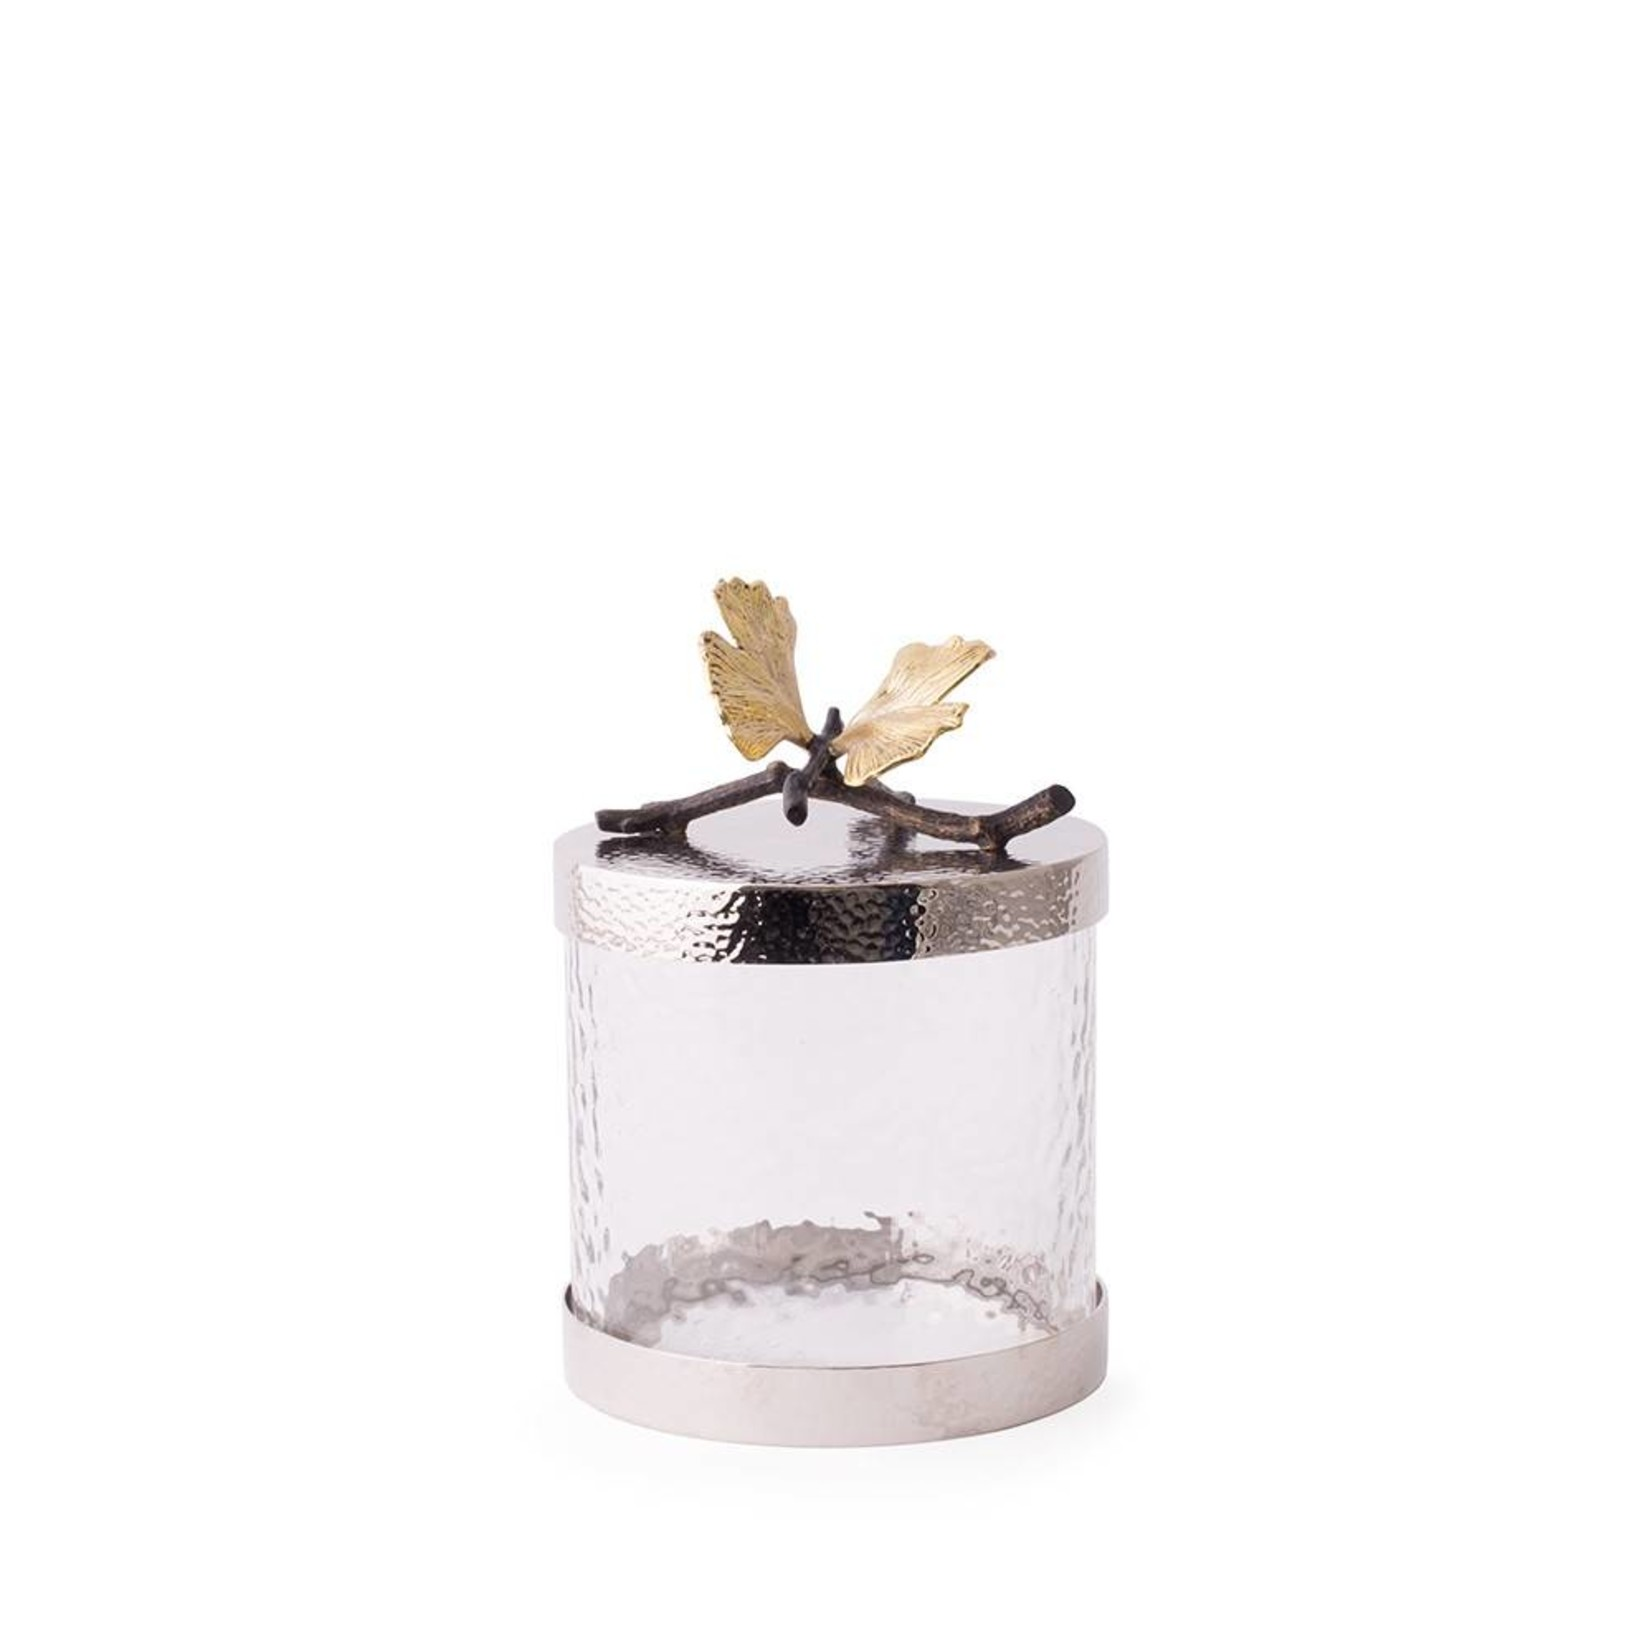 Michael Aram Butterfly ginkgo Kitchen Canister xs